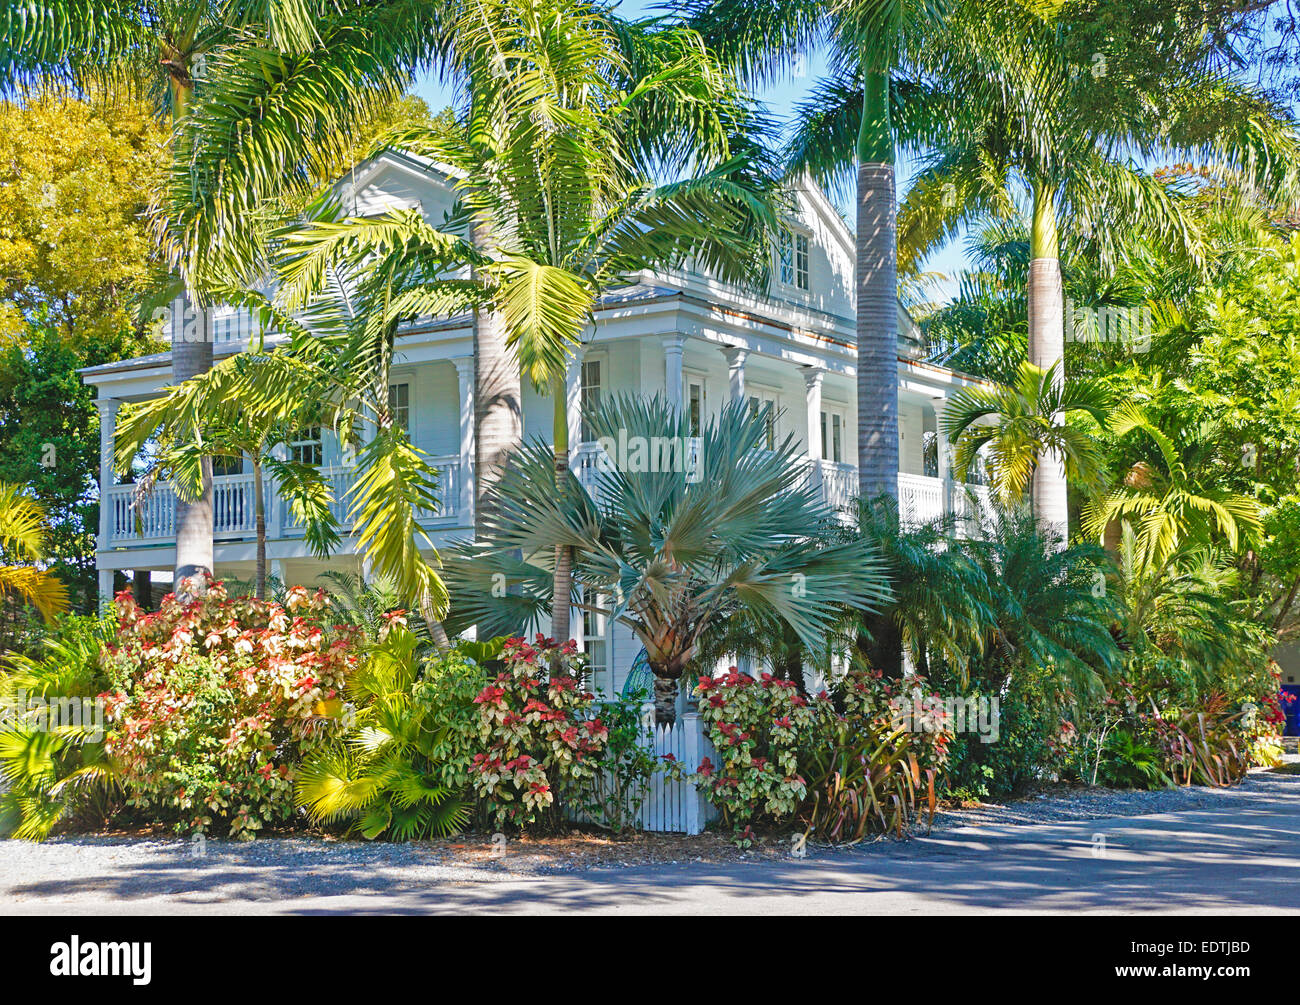 Grande maison à l'architecture de style de Key West. Photo Stock